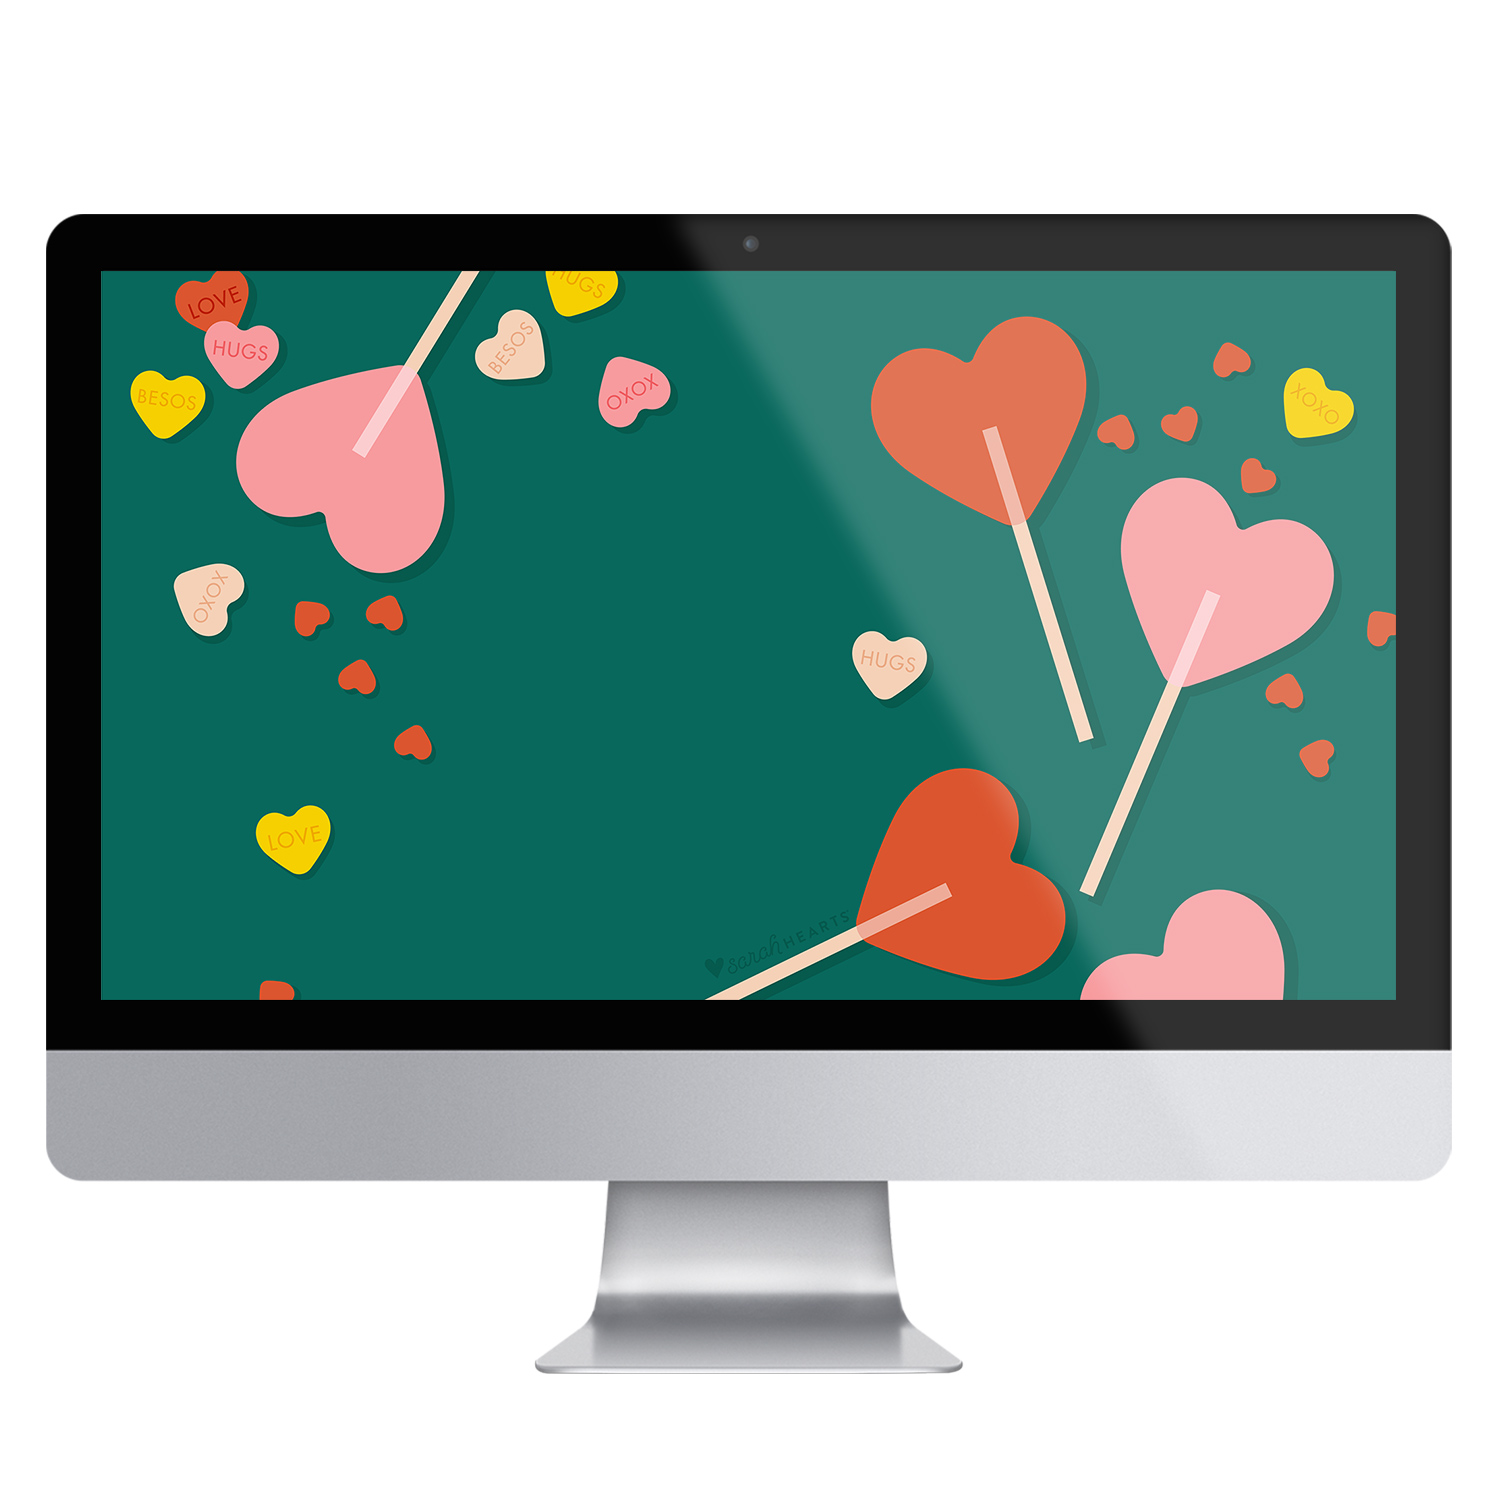 Wallpaper Downloads by Sarah Hearts 1500x1500